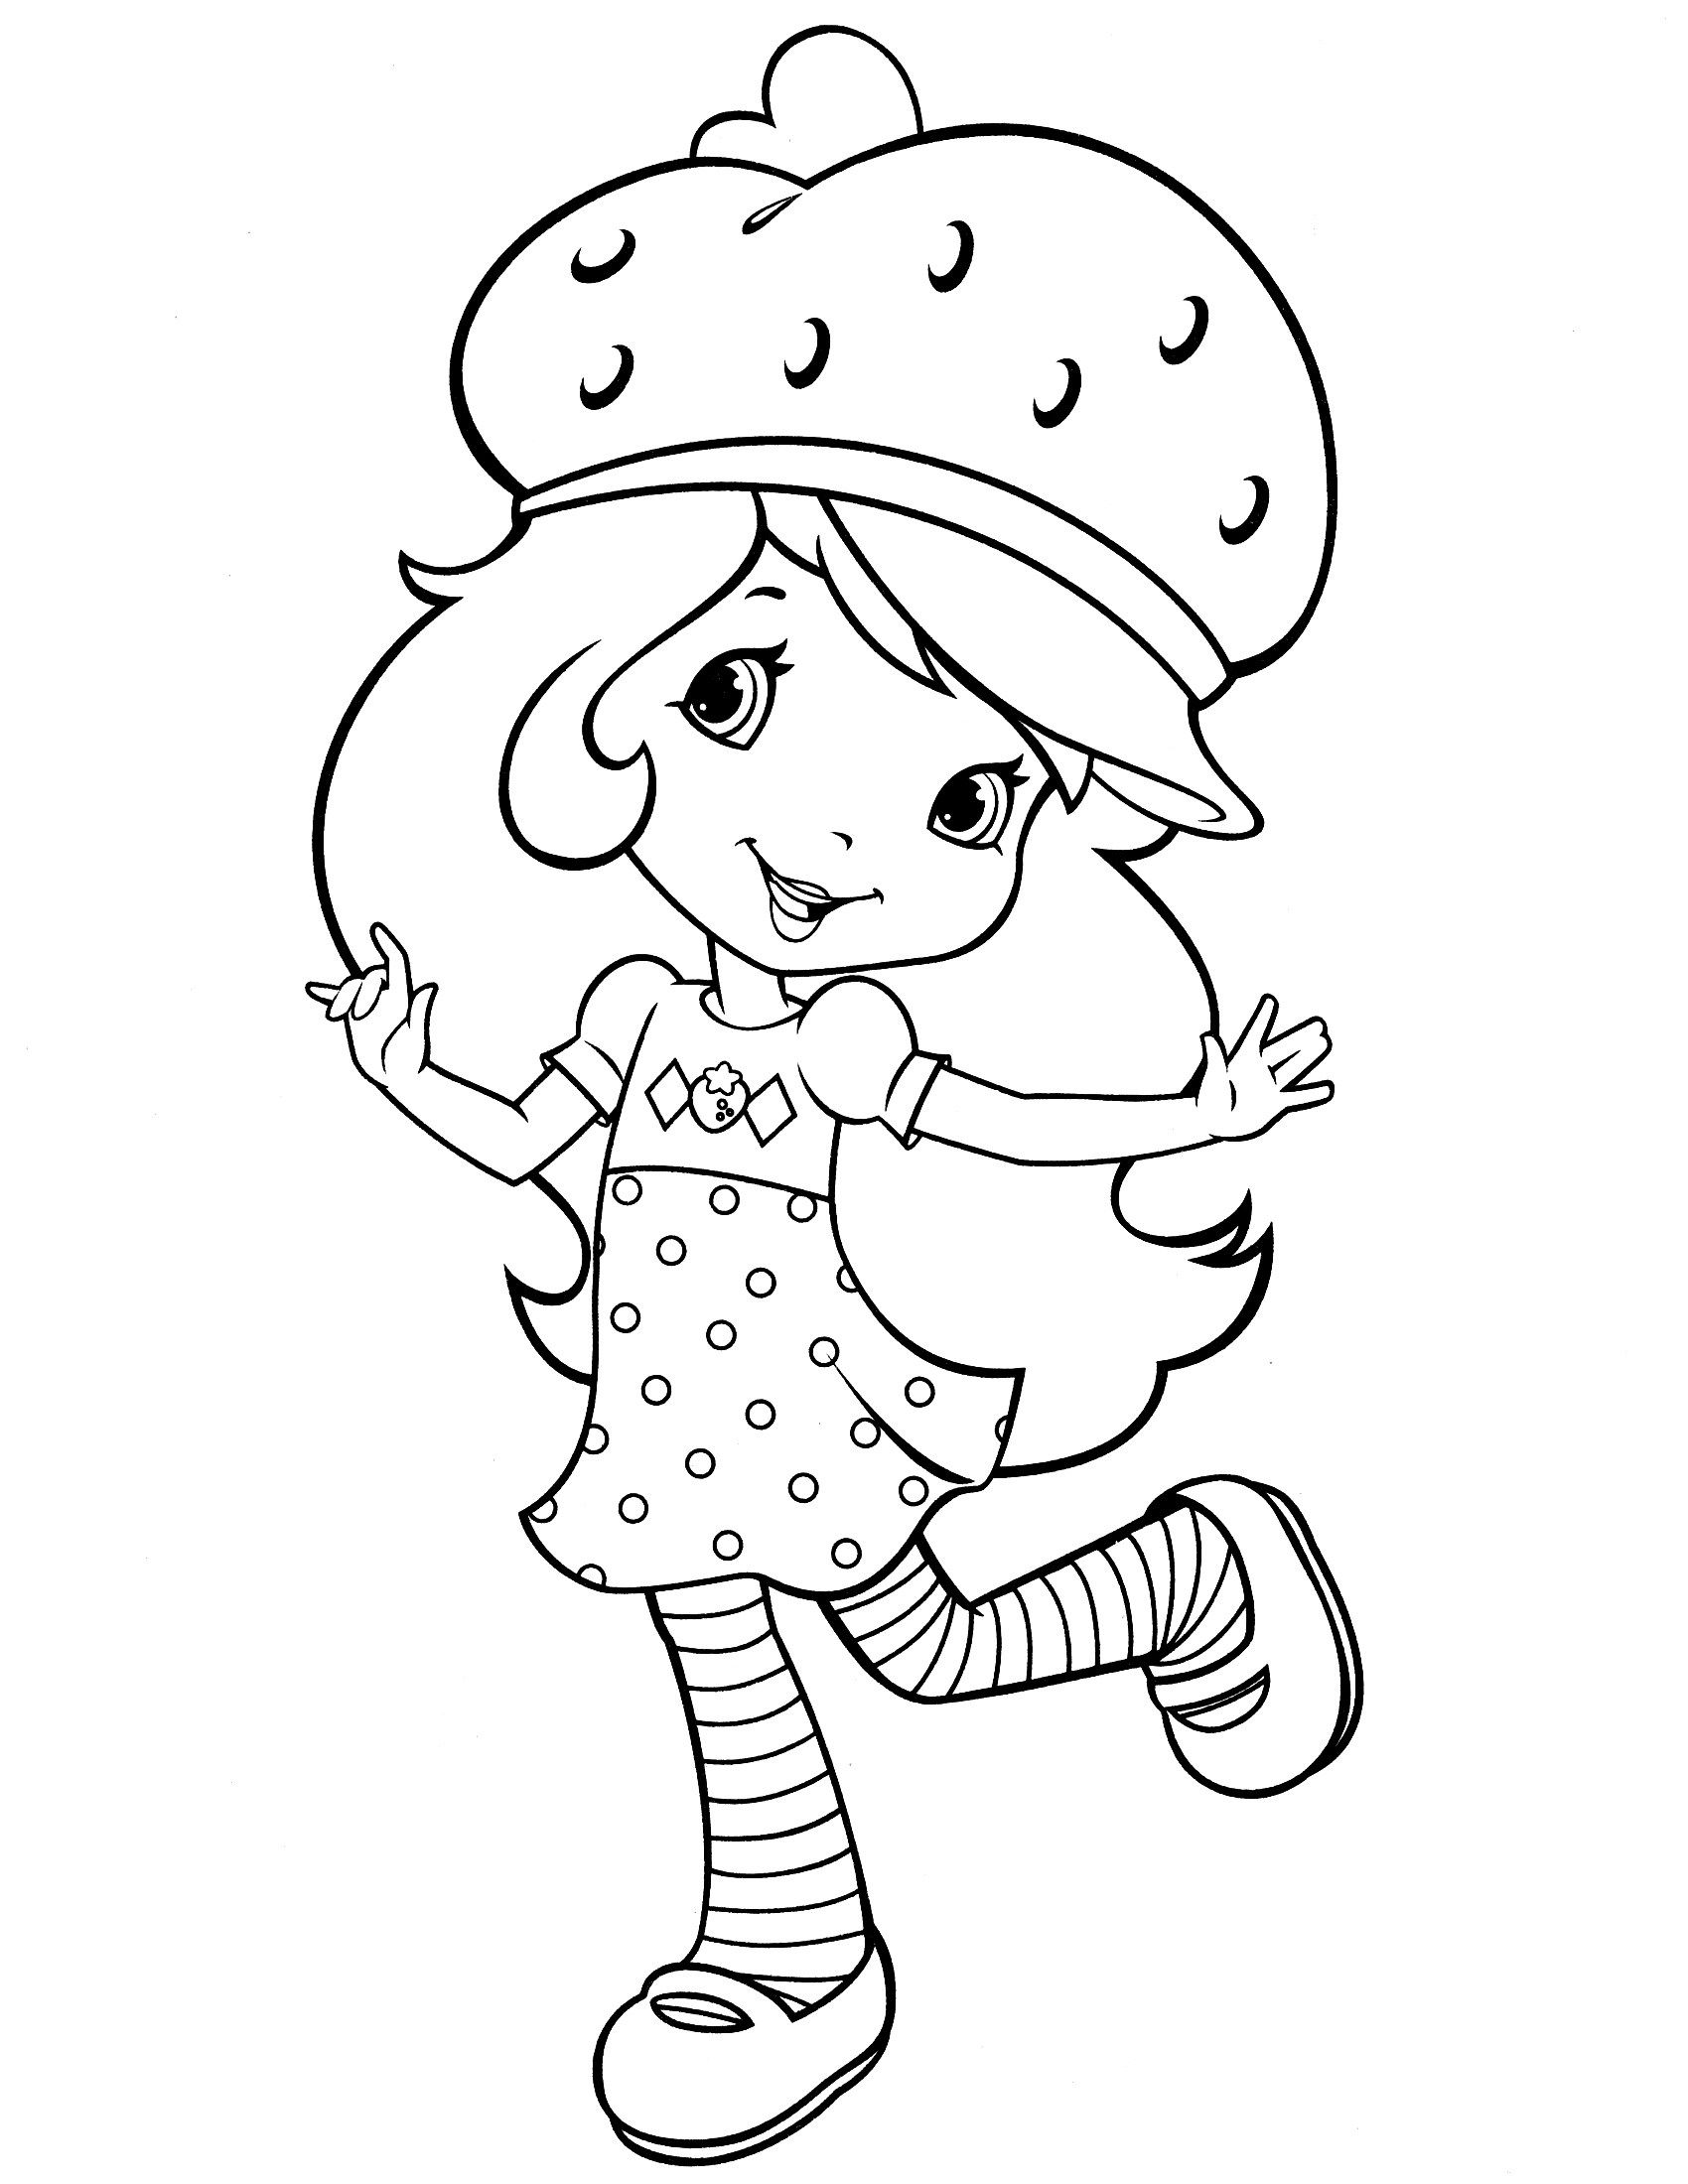 24 Pretty Photo Of Strawberry Coloring Page Davemelillo Com Strawberry Shortcake Coloring Pages Coloring Books Cartoon Coloring Pages